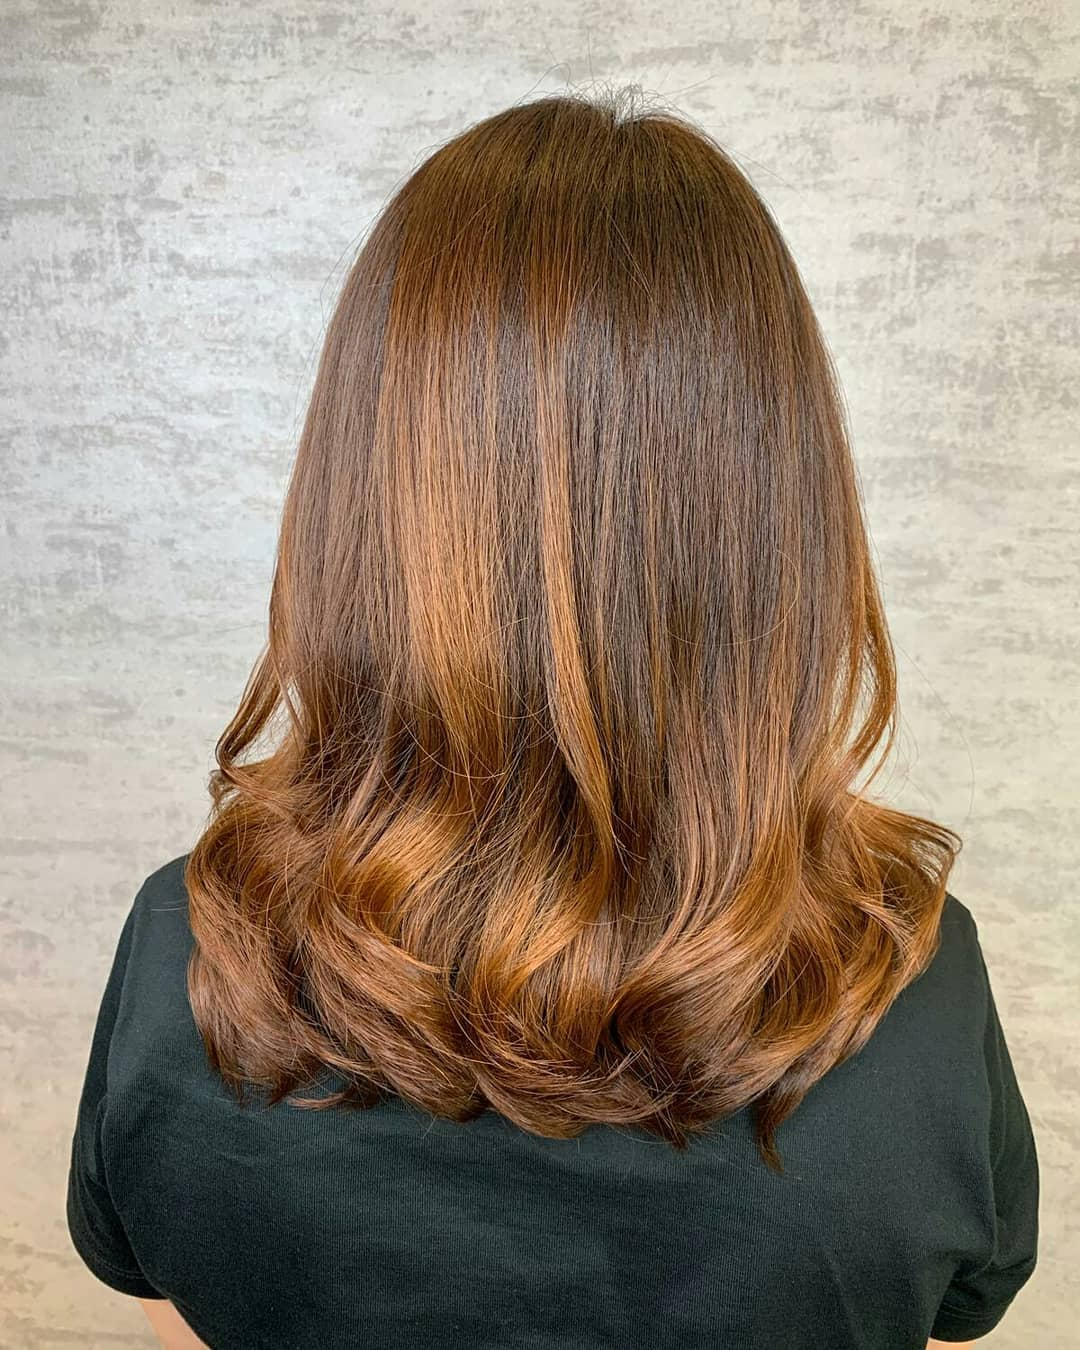 9 Affordable Hair Salons In Singapore For Quality Female Haircuts